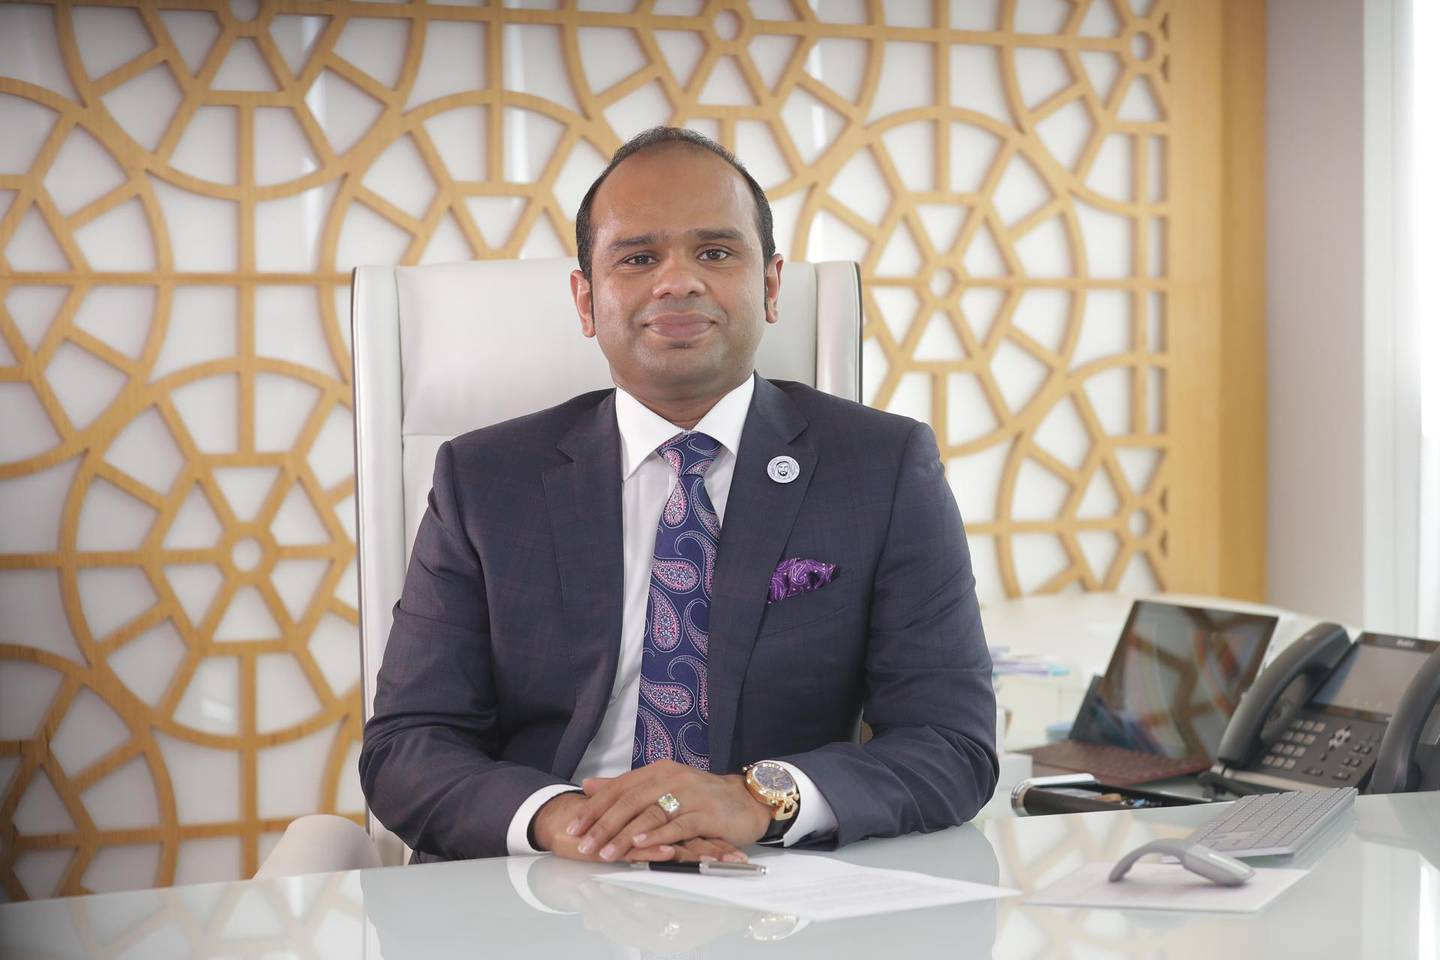 Adeeb Ahamed, managing director of LuLu Financial Group and Lulu Exchange, says normally there is a trend, especially among high-net-worth UAE customers, to wait for better rates to transfer funds in bulk to Britain. Courtesy: LuLu Financial Group